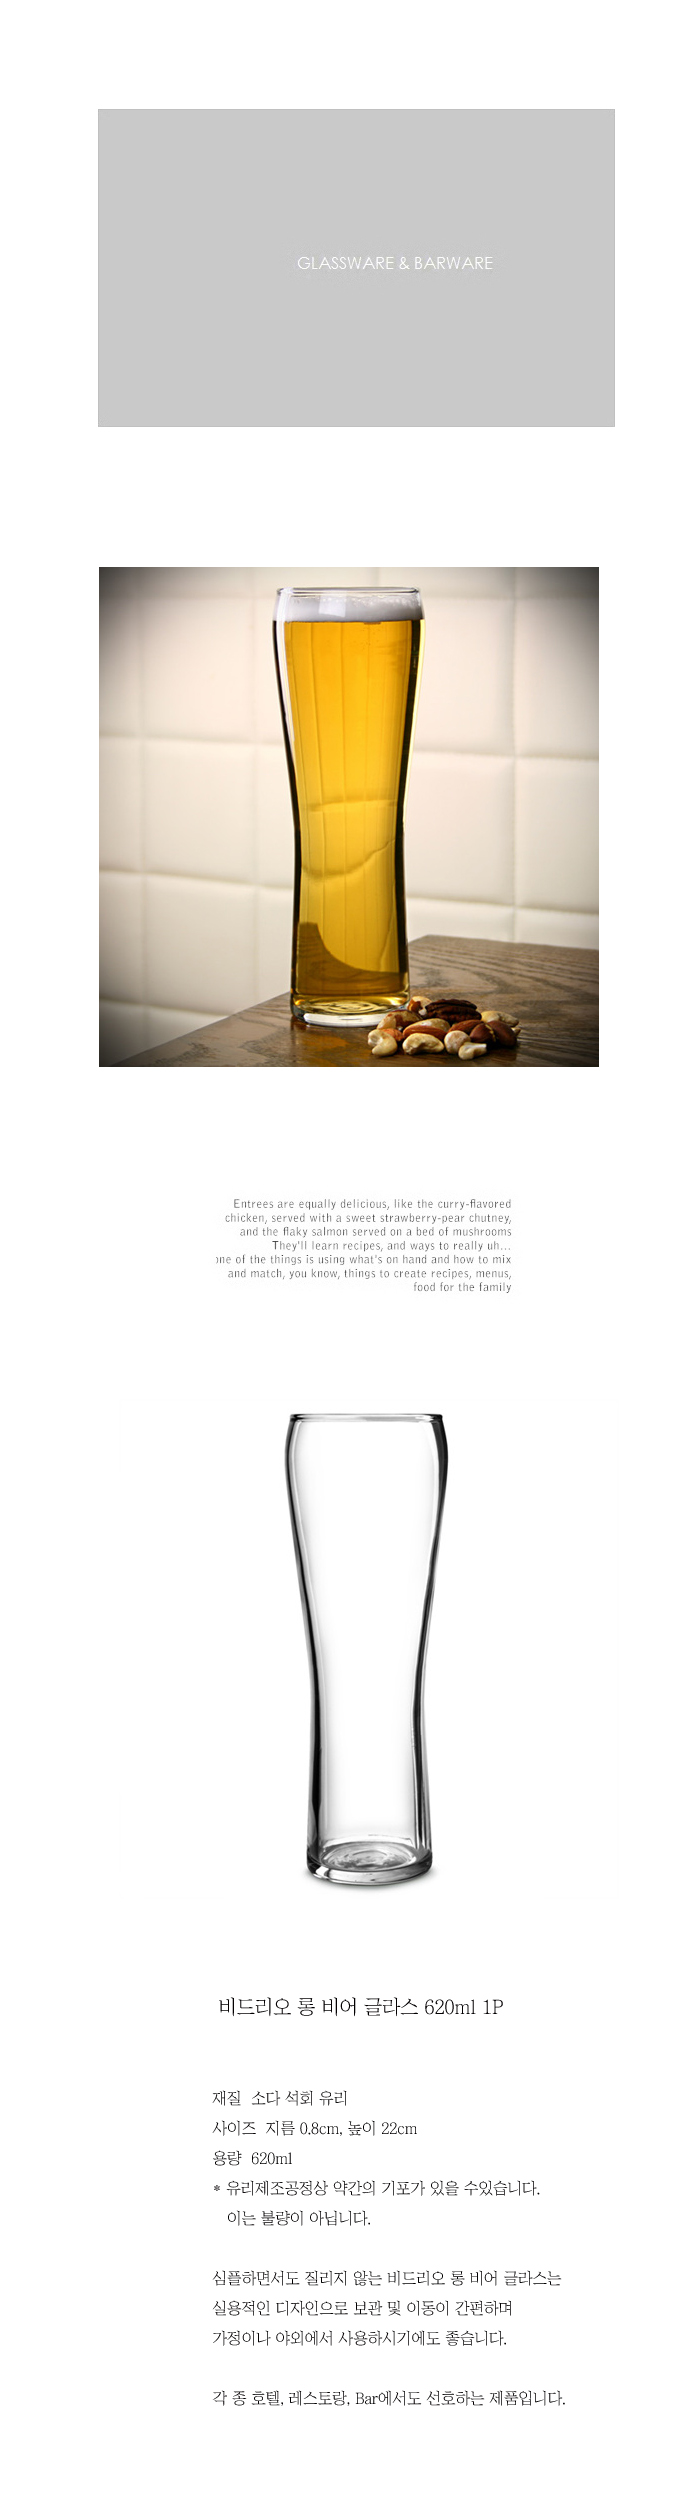 [ Bormioli ] Sommelier Long Beer Glass 620ml 1P